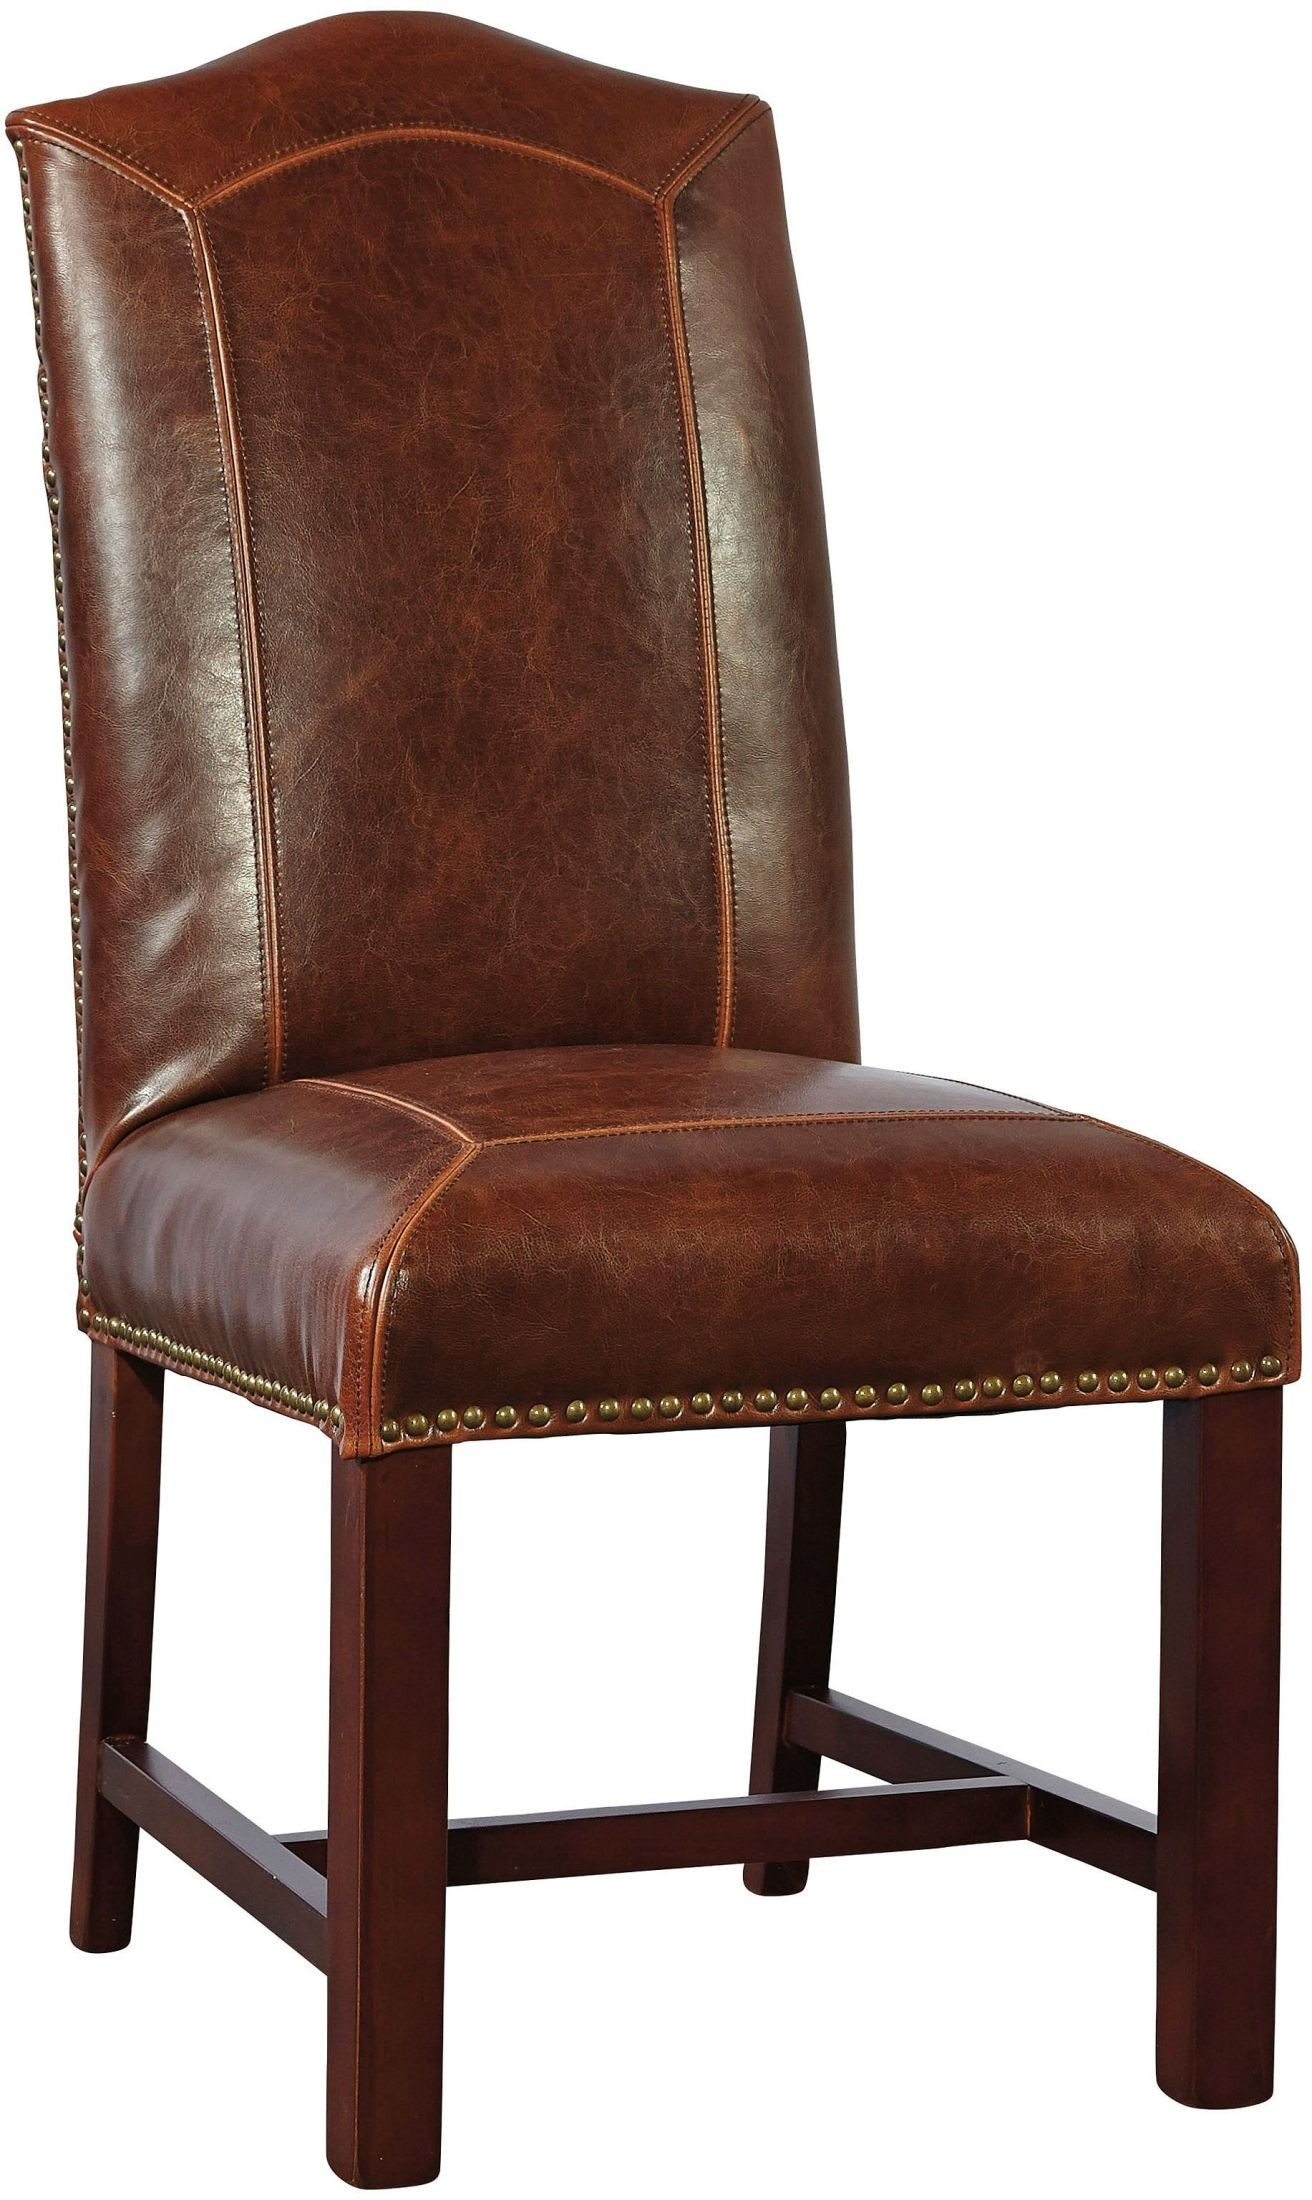 baseball desk chair power chairs covered by medicare blake brown leather dining set of 2 from furniture